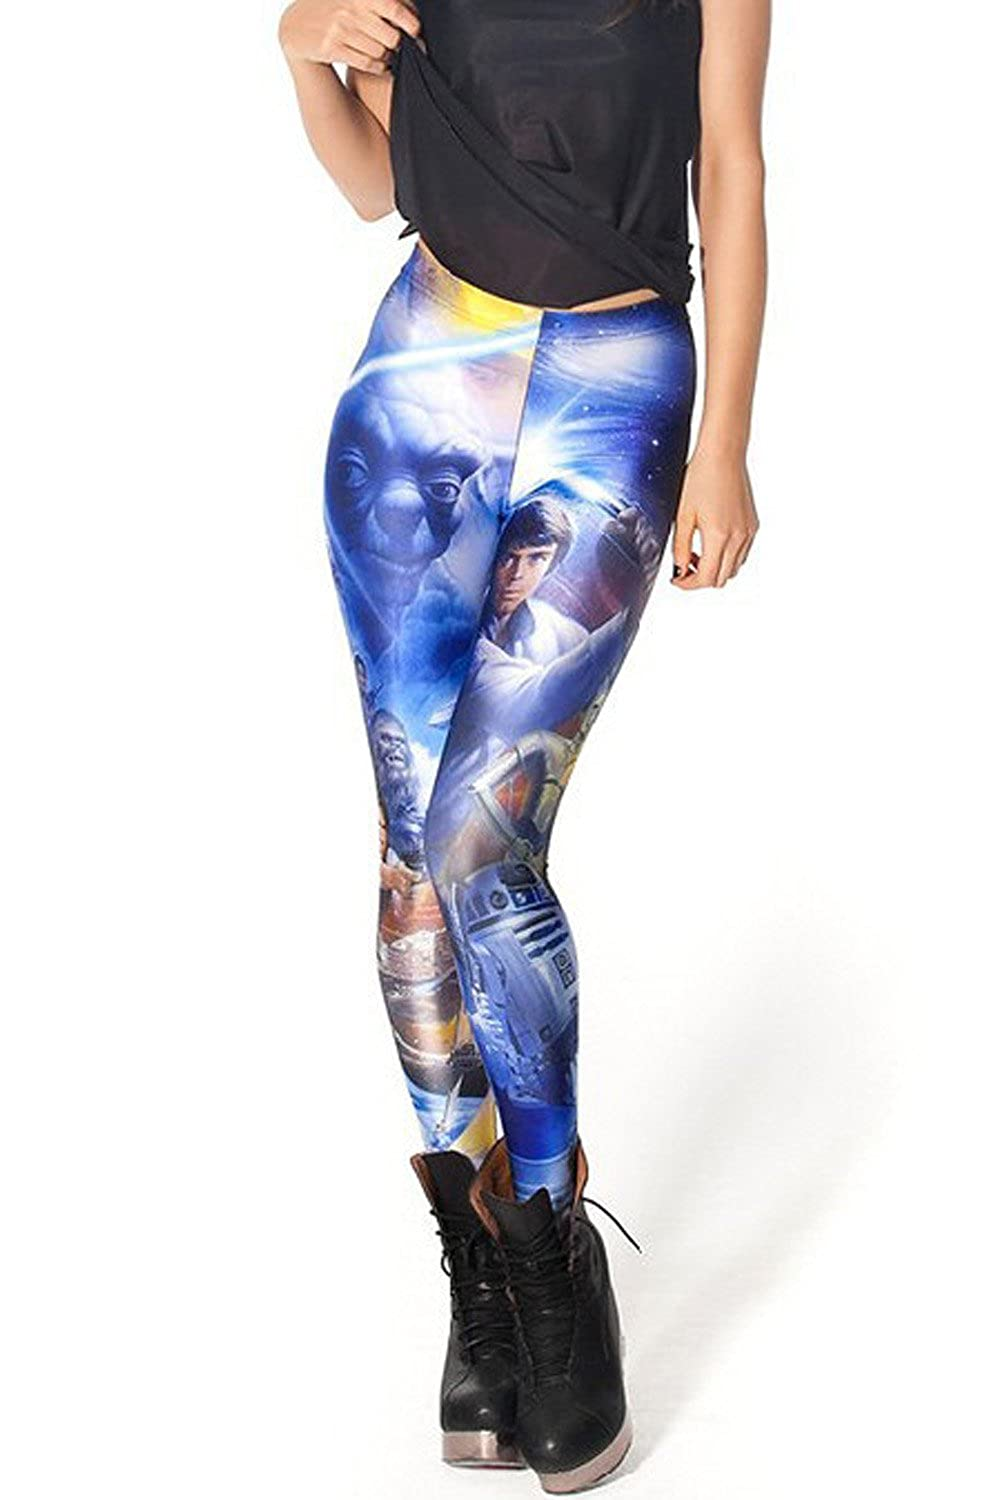 Lady Queen Women's Basic Star Wars Print Stretch Skinny Leggings Pants